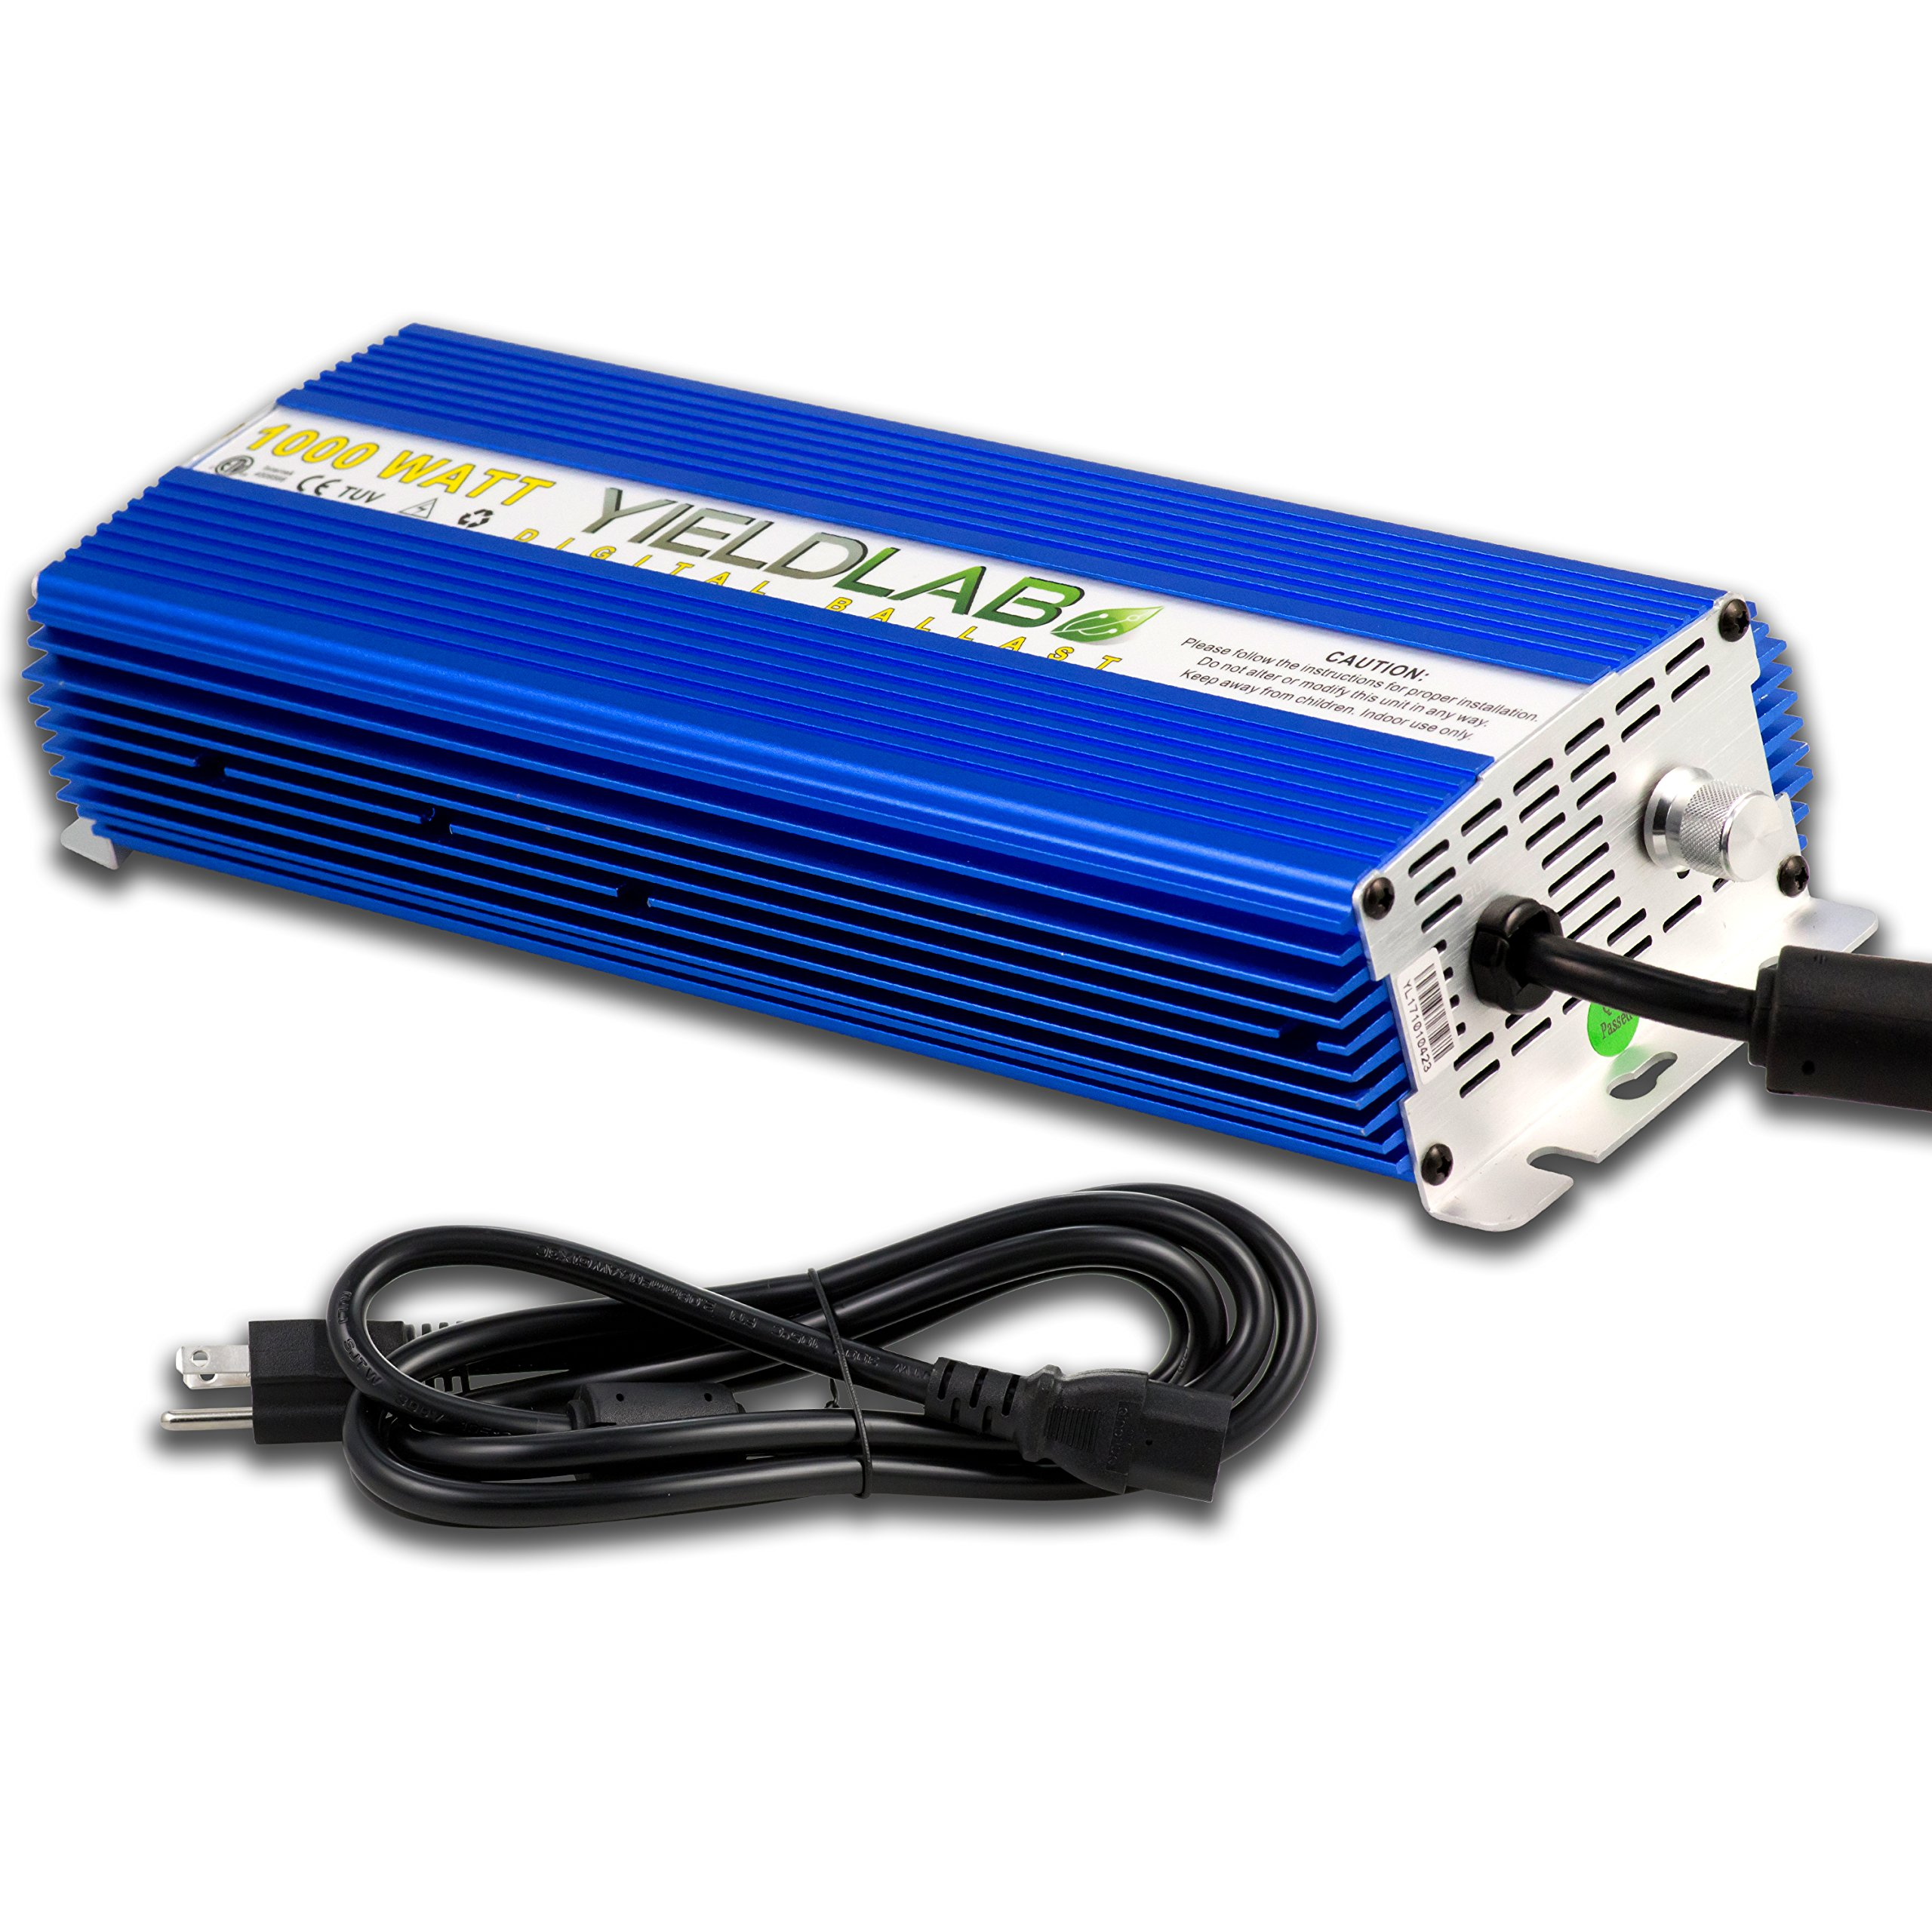 Yield Lab Horticulture 1000w Slim Line Dimmable Digital Ballast for HPS MH Grow Light by Yield Lab